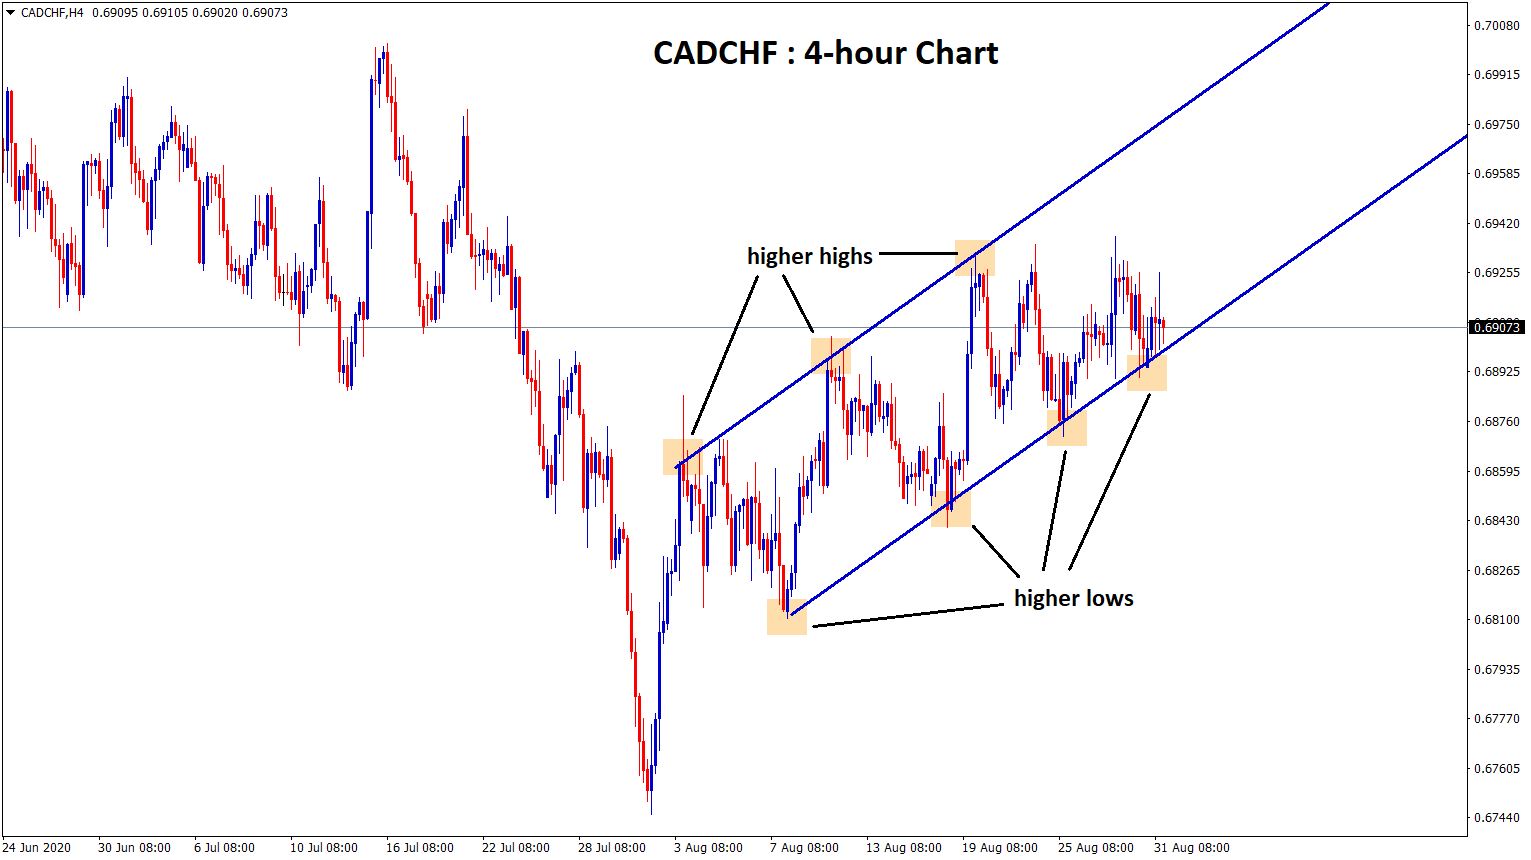 Ascending Channel in cadchf 4 hour